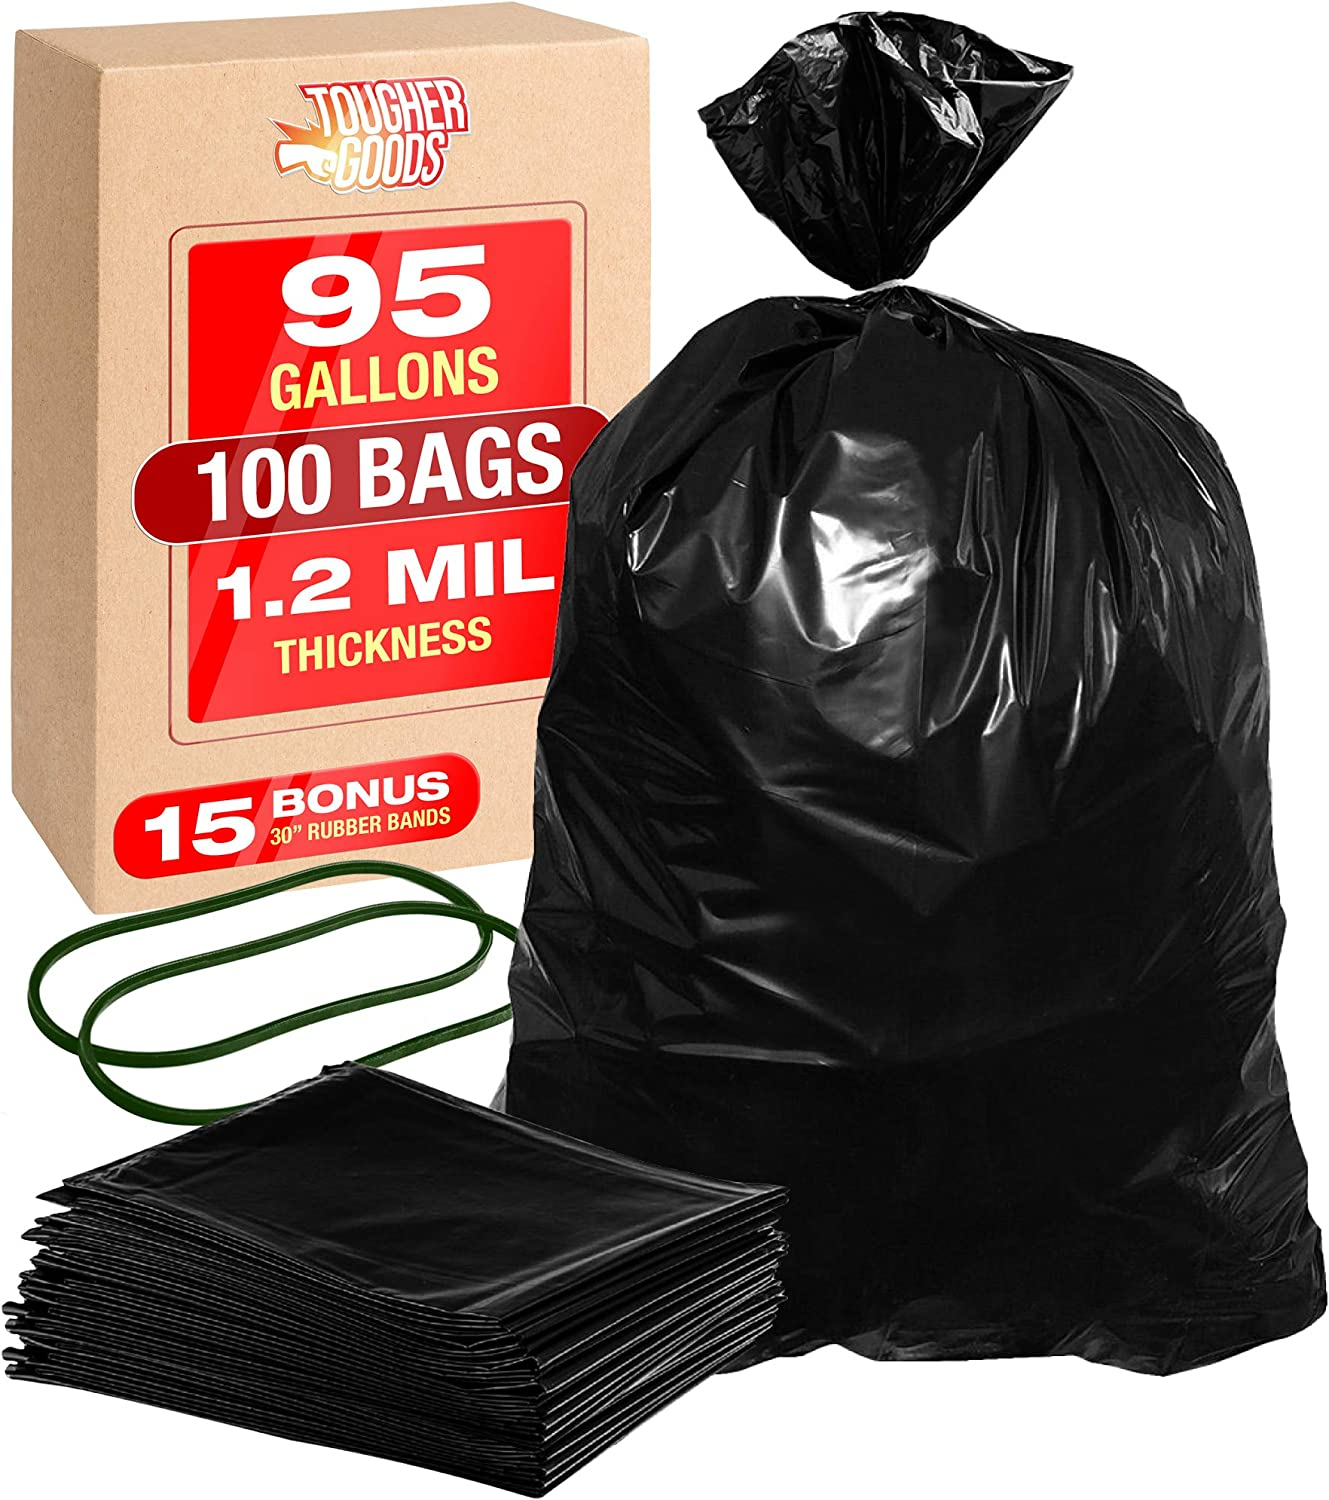 "100Pk Heavy Duty Black Trash Bags – 95 Gallon Garbage Can Liner for Garbage, Storage, Yard Waste, Construction and Commercial Use - 1.2 Mil Thick 61 x 68 with 30"" Rubber Bands by Tougher Goods"